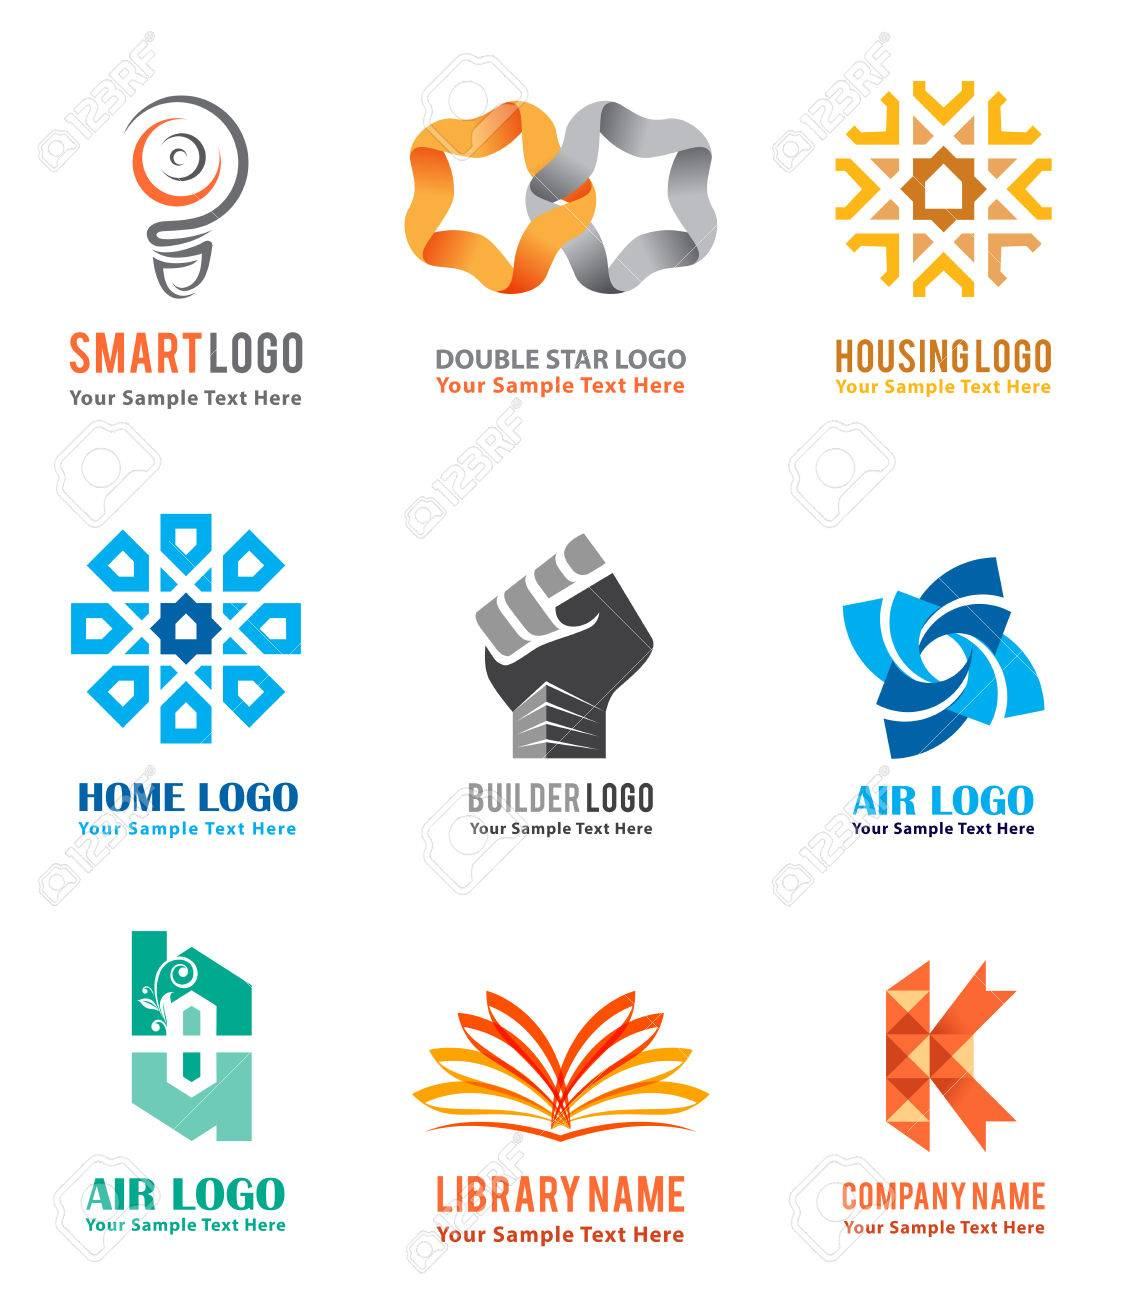 corporate logo design samples stunning company logo design ideas photos decorating interior - Company Logo Design Ideas